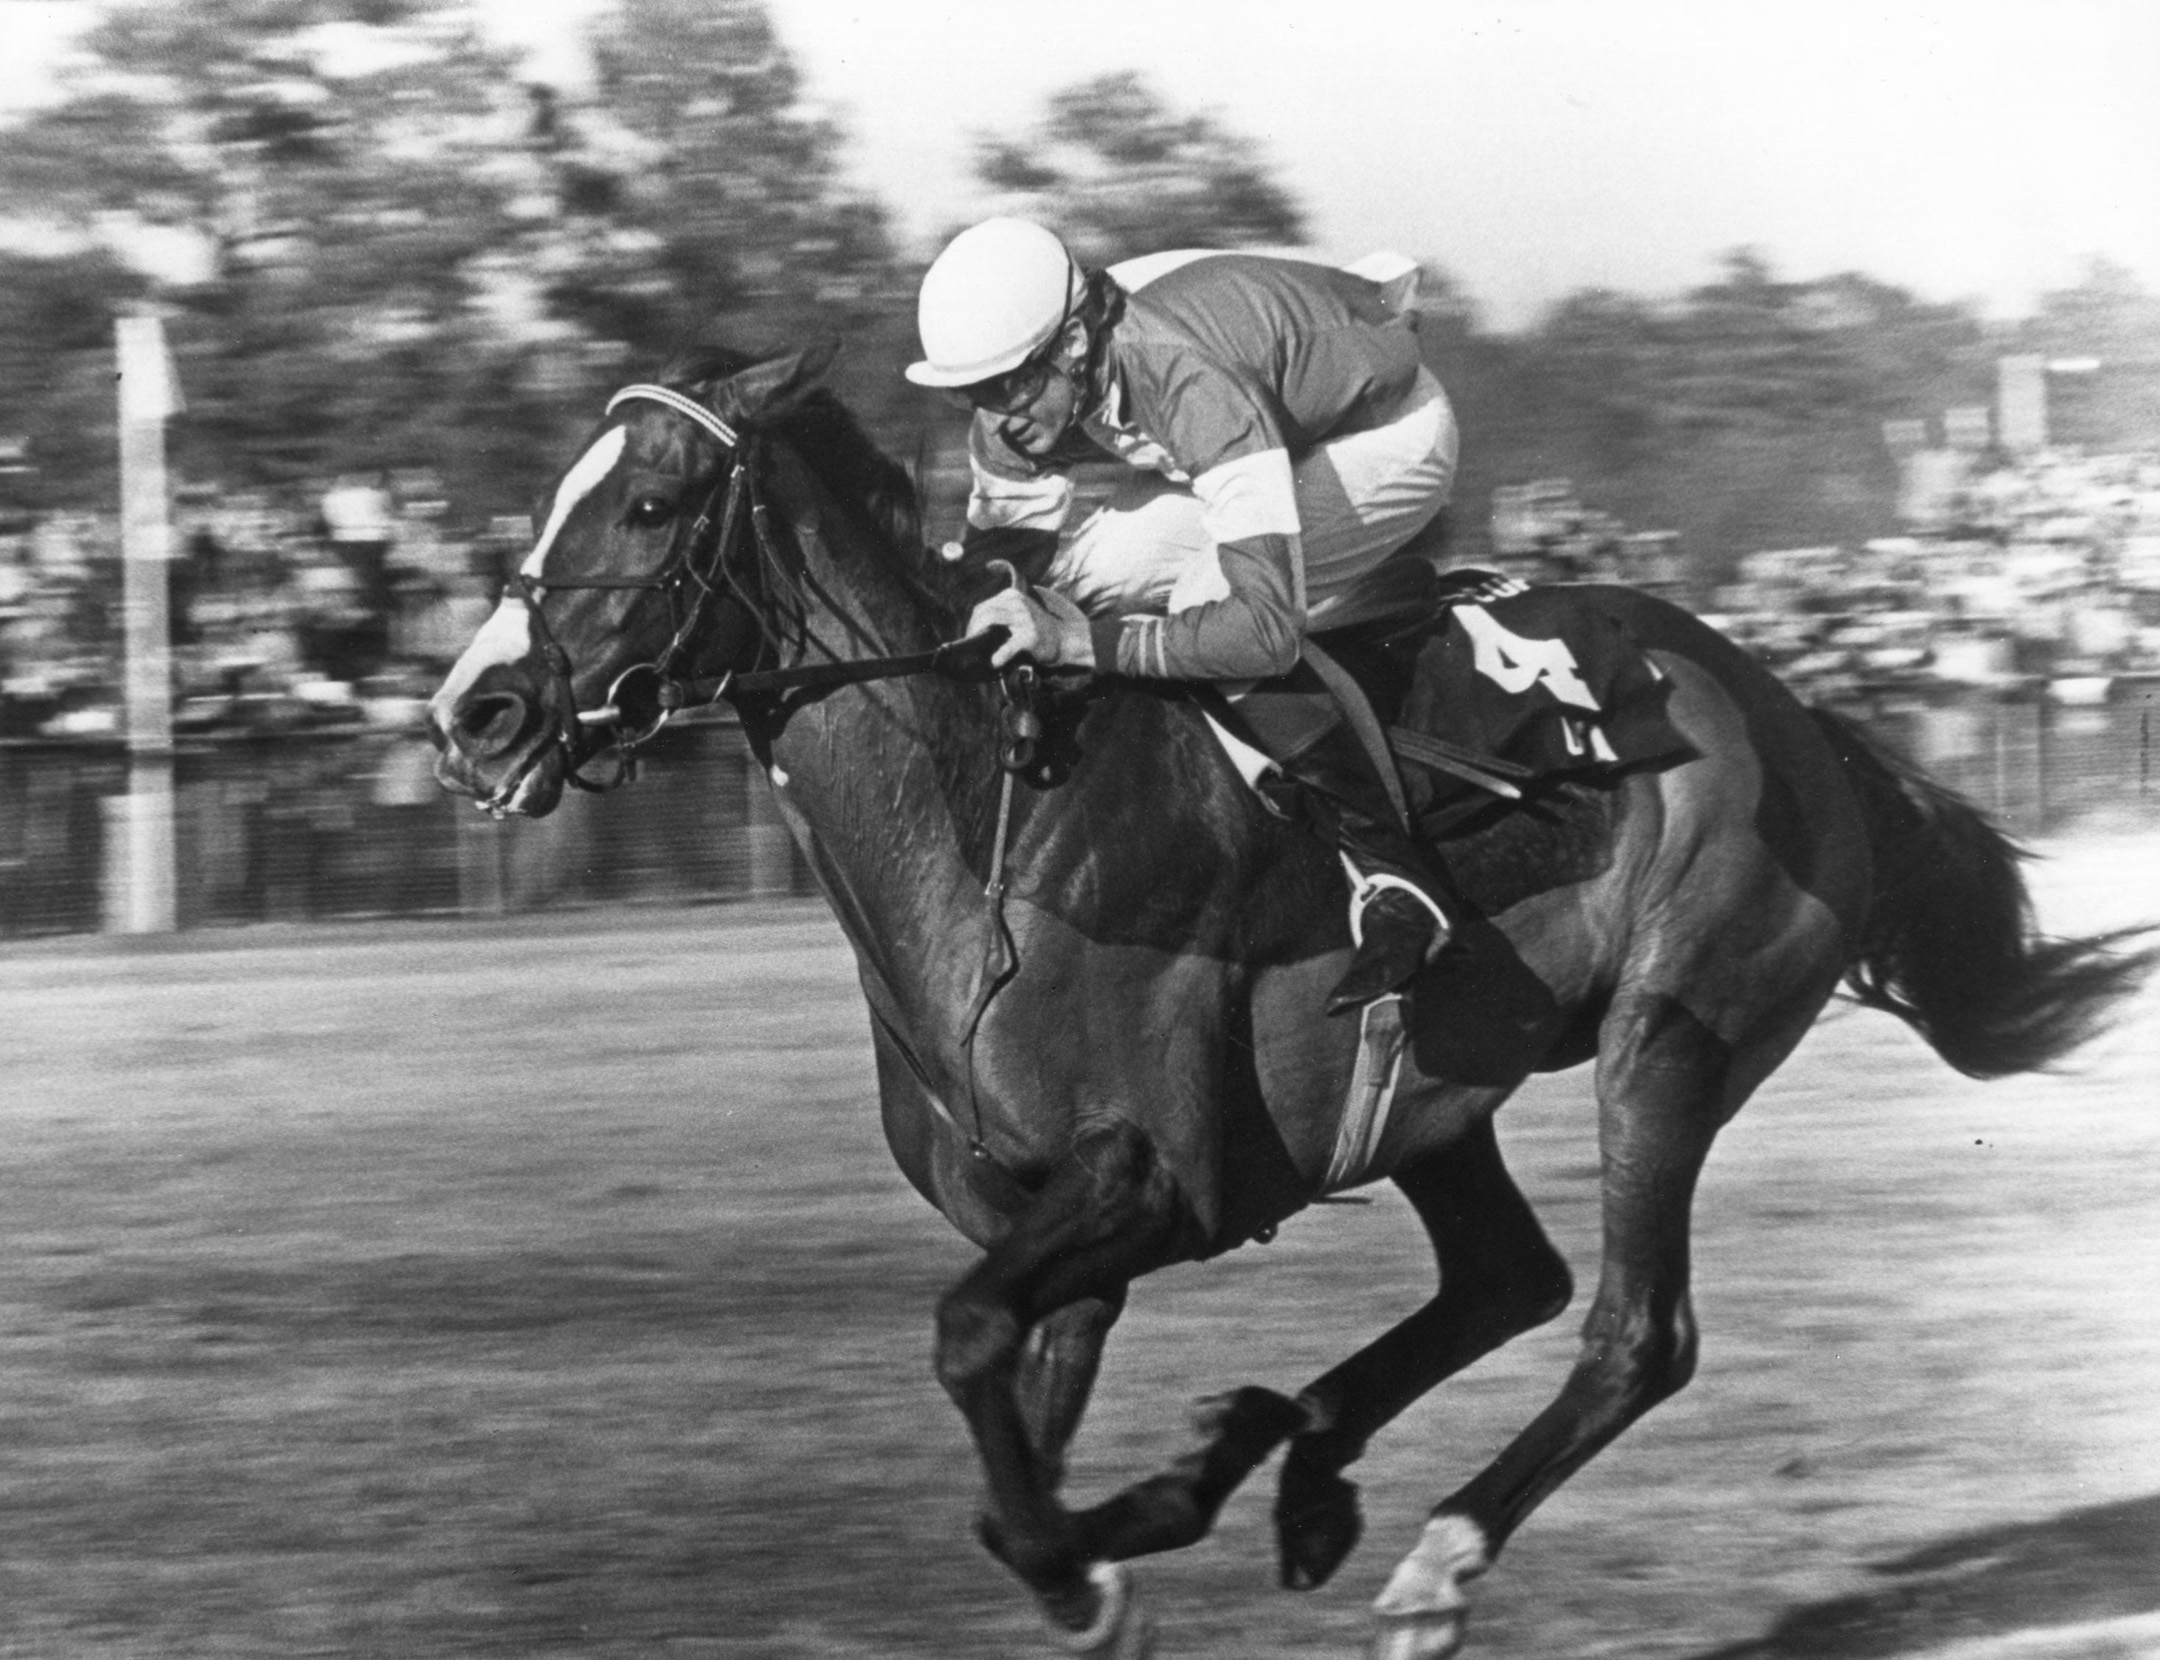 Zaccio (Greg Morris up) winning the 1981 Colonial Cup at Camden, S.C. (Milt Tobey/The BloodHorse /Museum Collection)